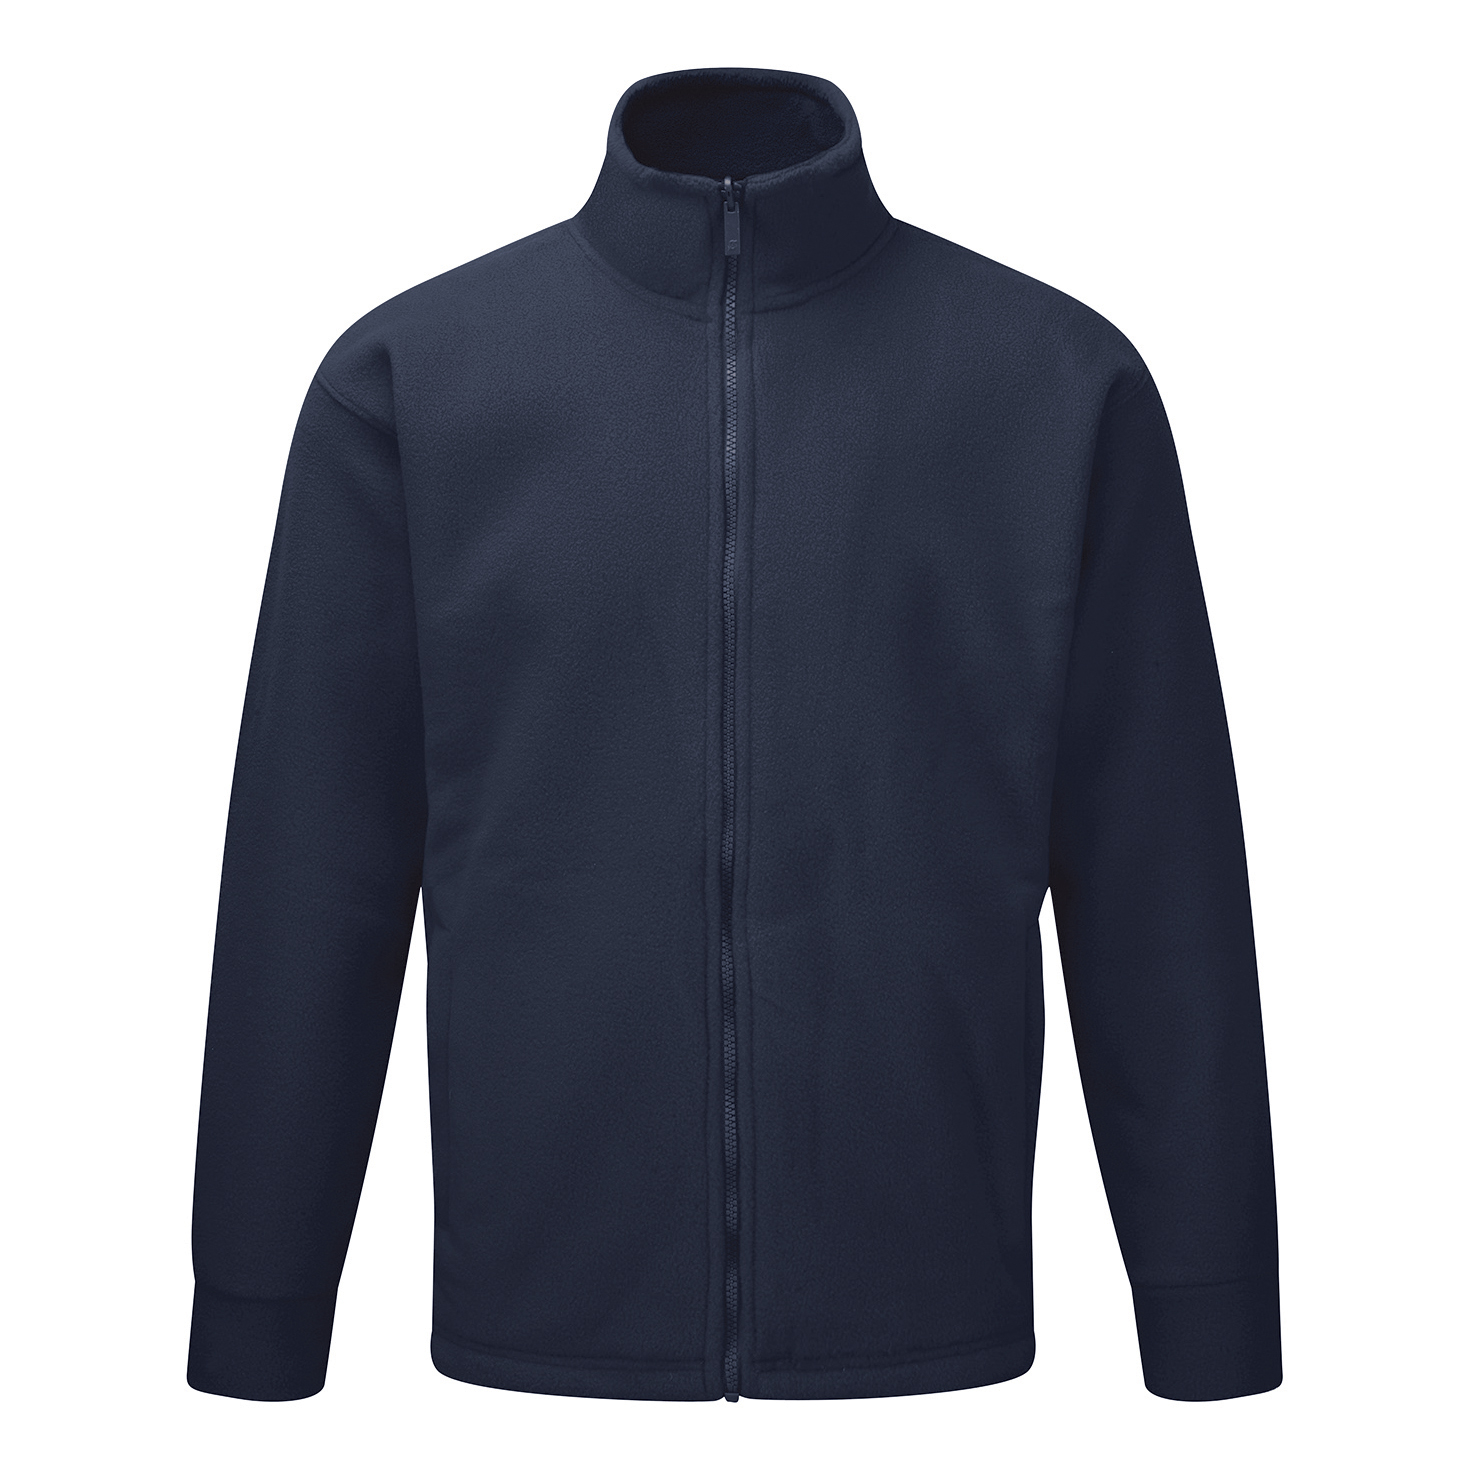 Classic Fleece Jacket Elasticated Cuffs Full Zip Front Large Navy Blue Ref FLJNL 1-3 Days Lead Time